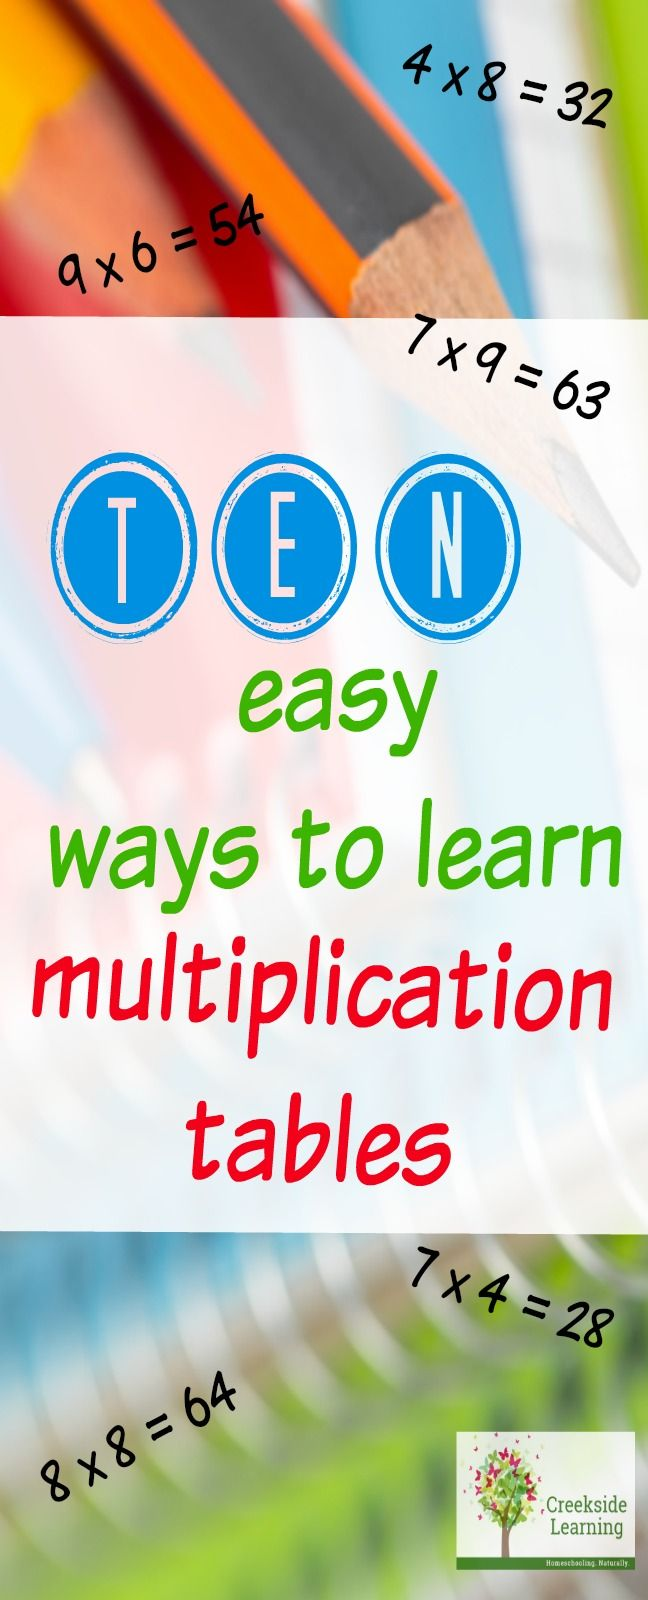 How to learn multiplication tables quickly 10 ideas how to learn multiplication tables quickly 10 ideas gamestrikefo Gallery